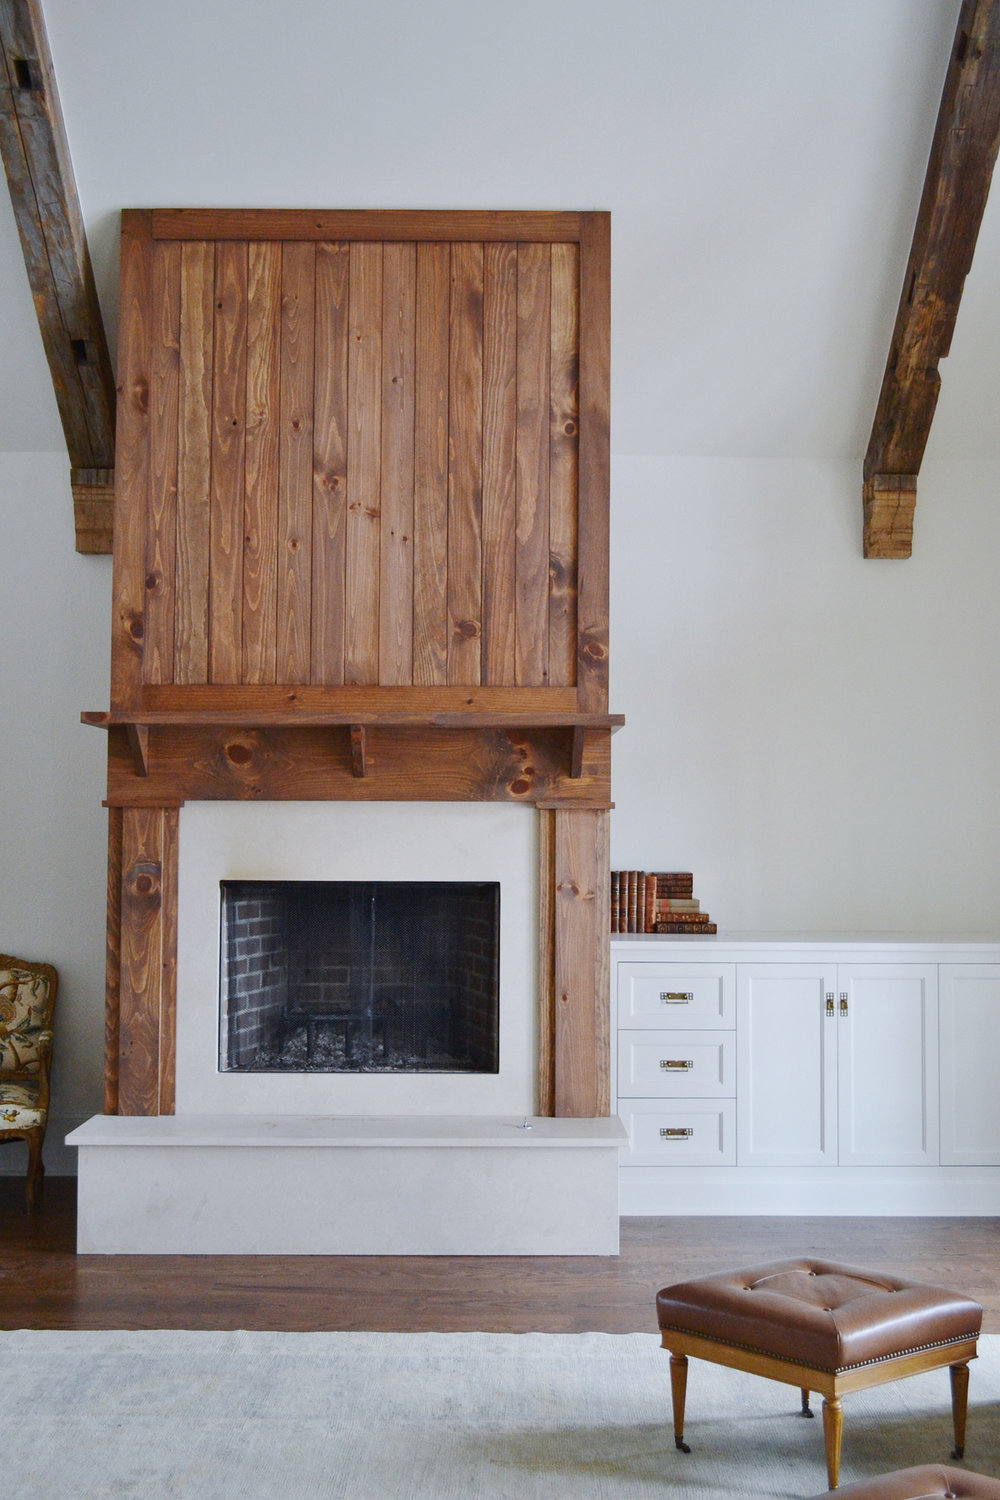 interior Lake Oconee lake house wood overmantel fireplace.jpg